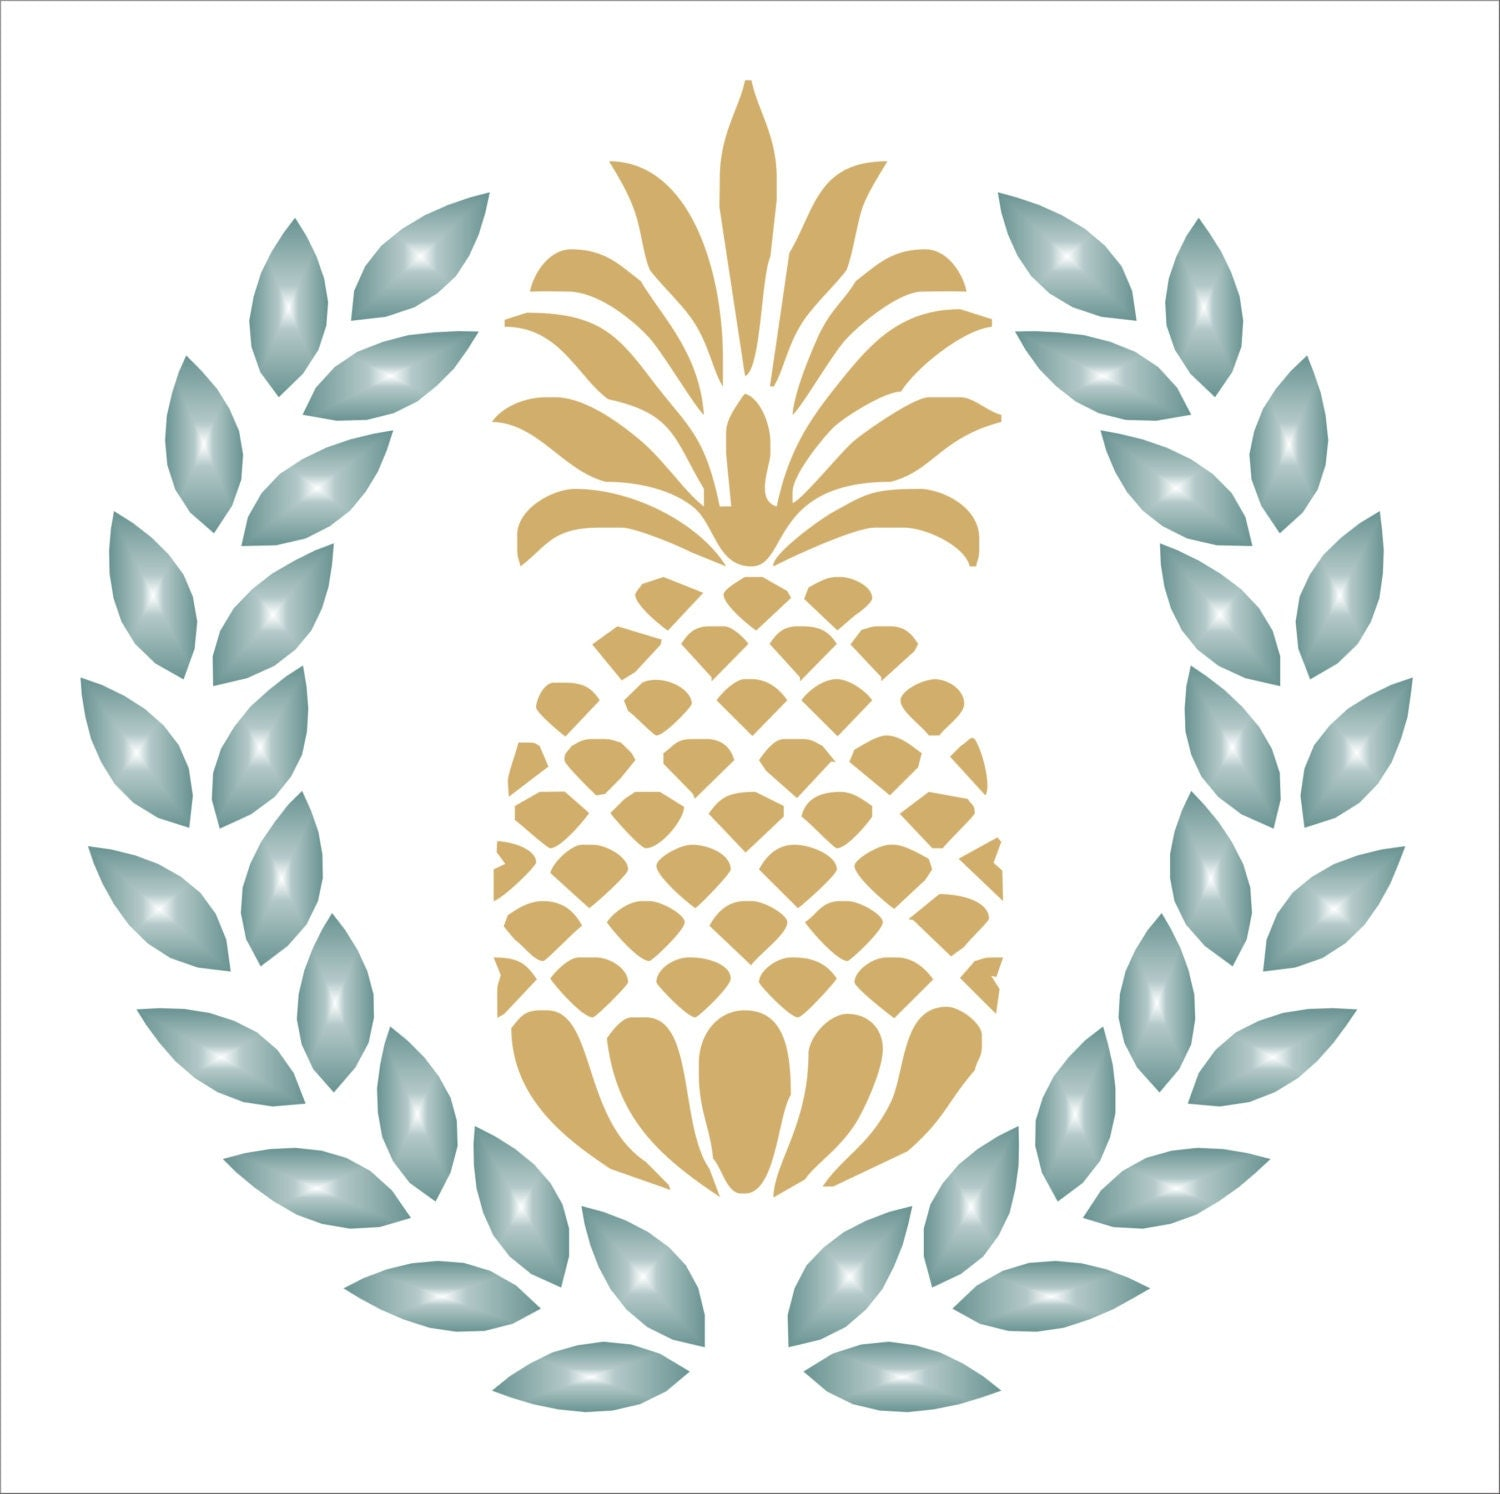 Pineapple Laurel Wreath STENCIL 6 sizes available  Cute Pineapple Stencil